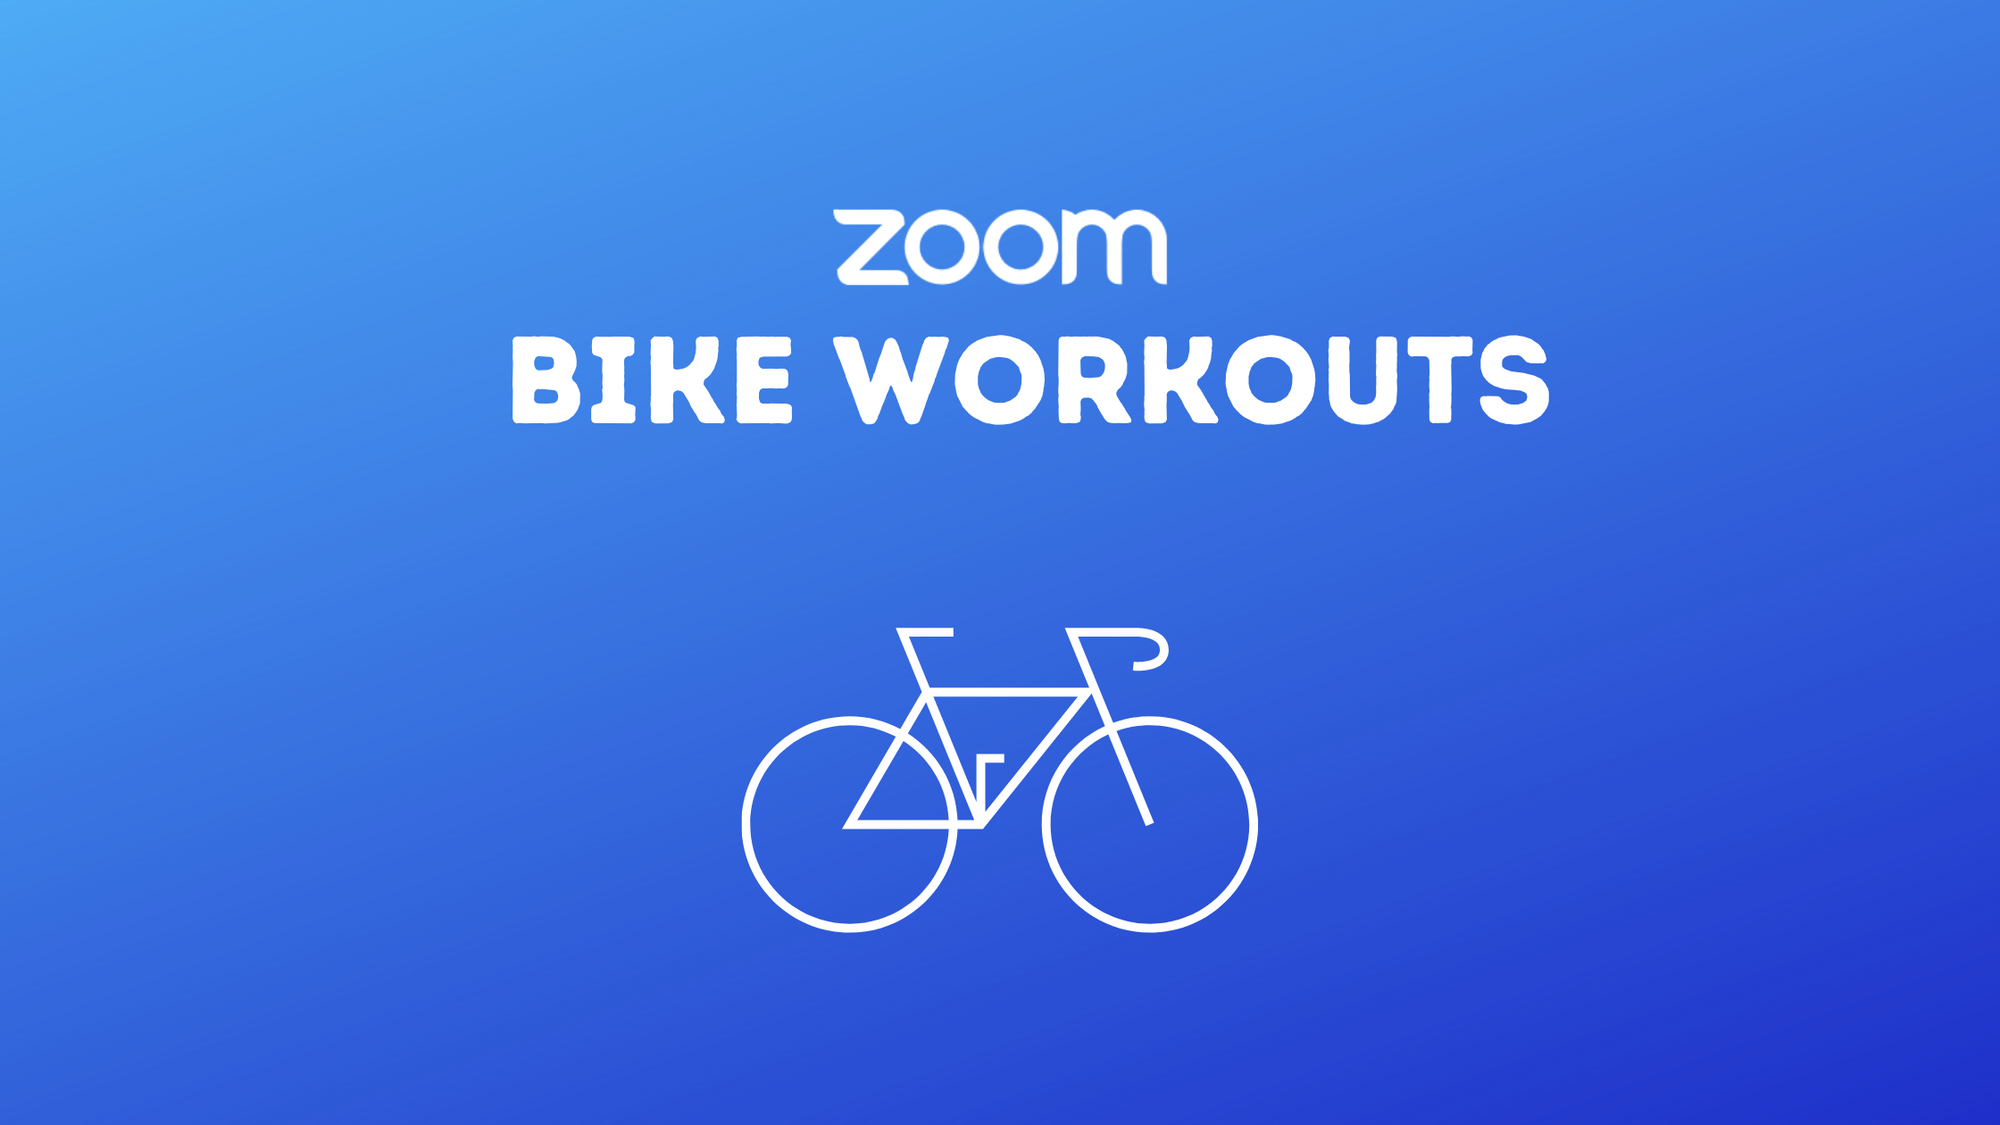 Zoom bike workout